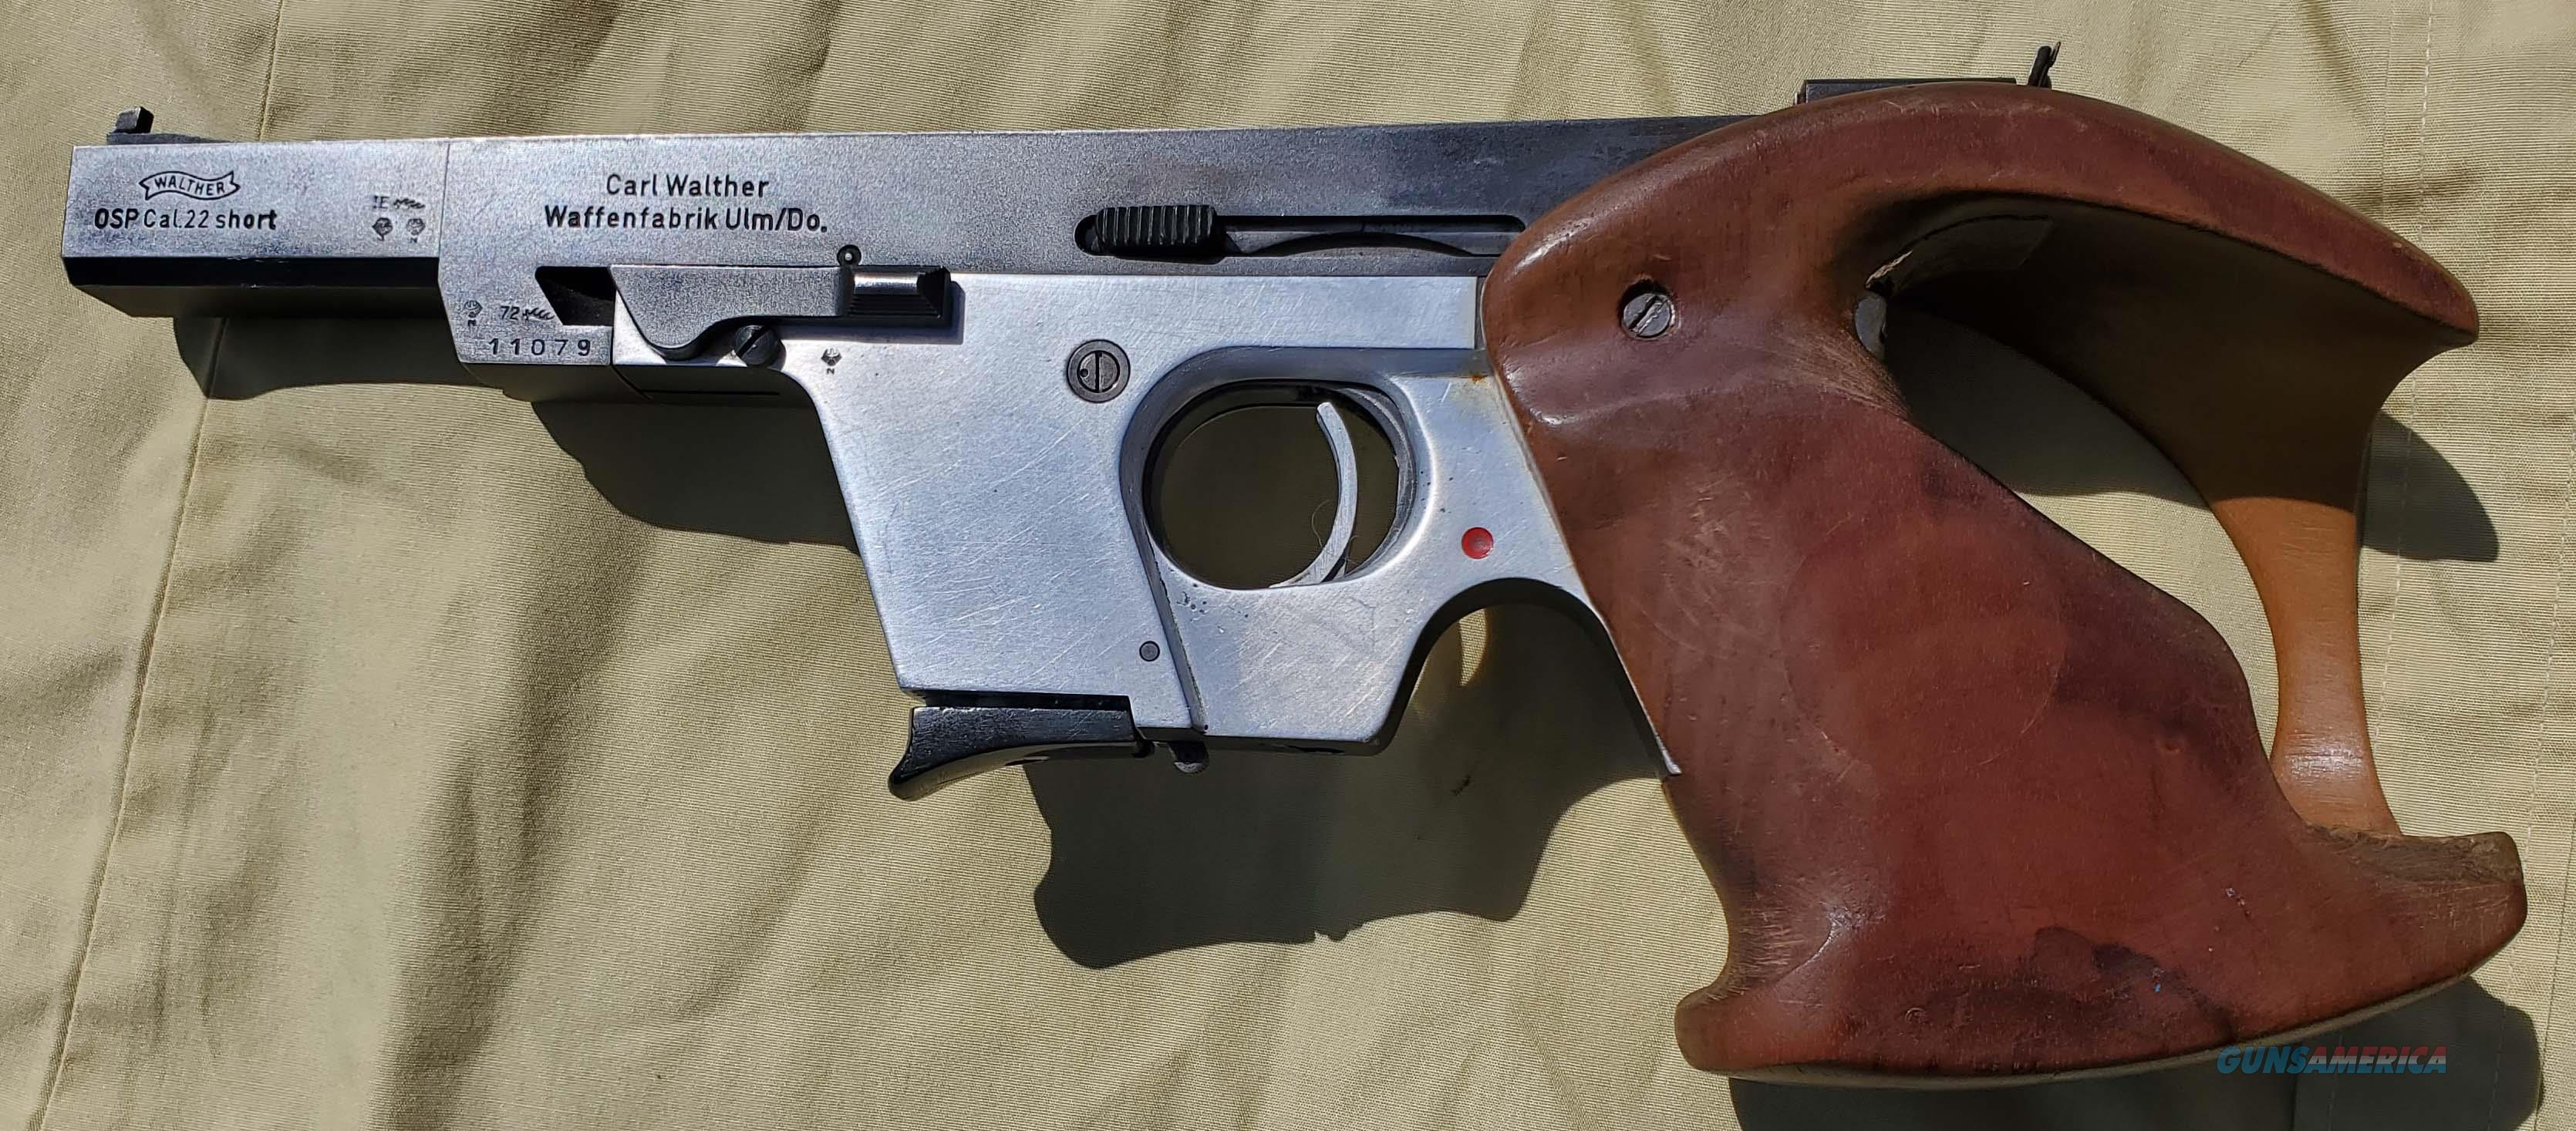 WTS Walther OSP  Guns > Pistols > Walther Pistols > Post WWII > Target Pistols